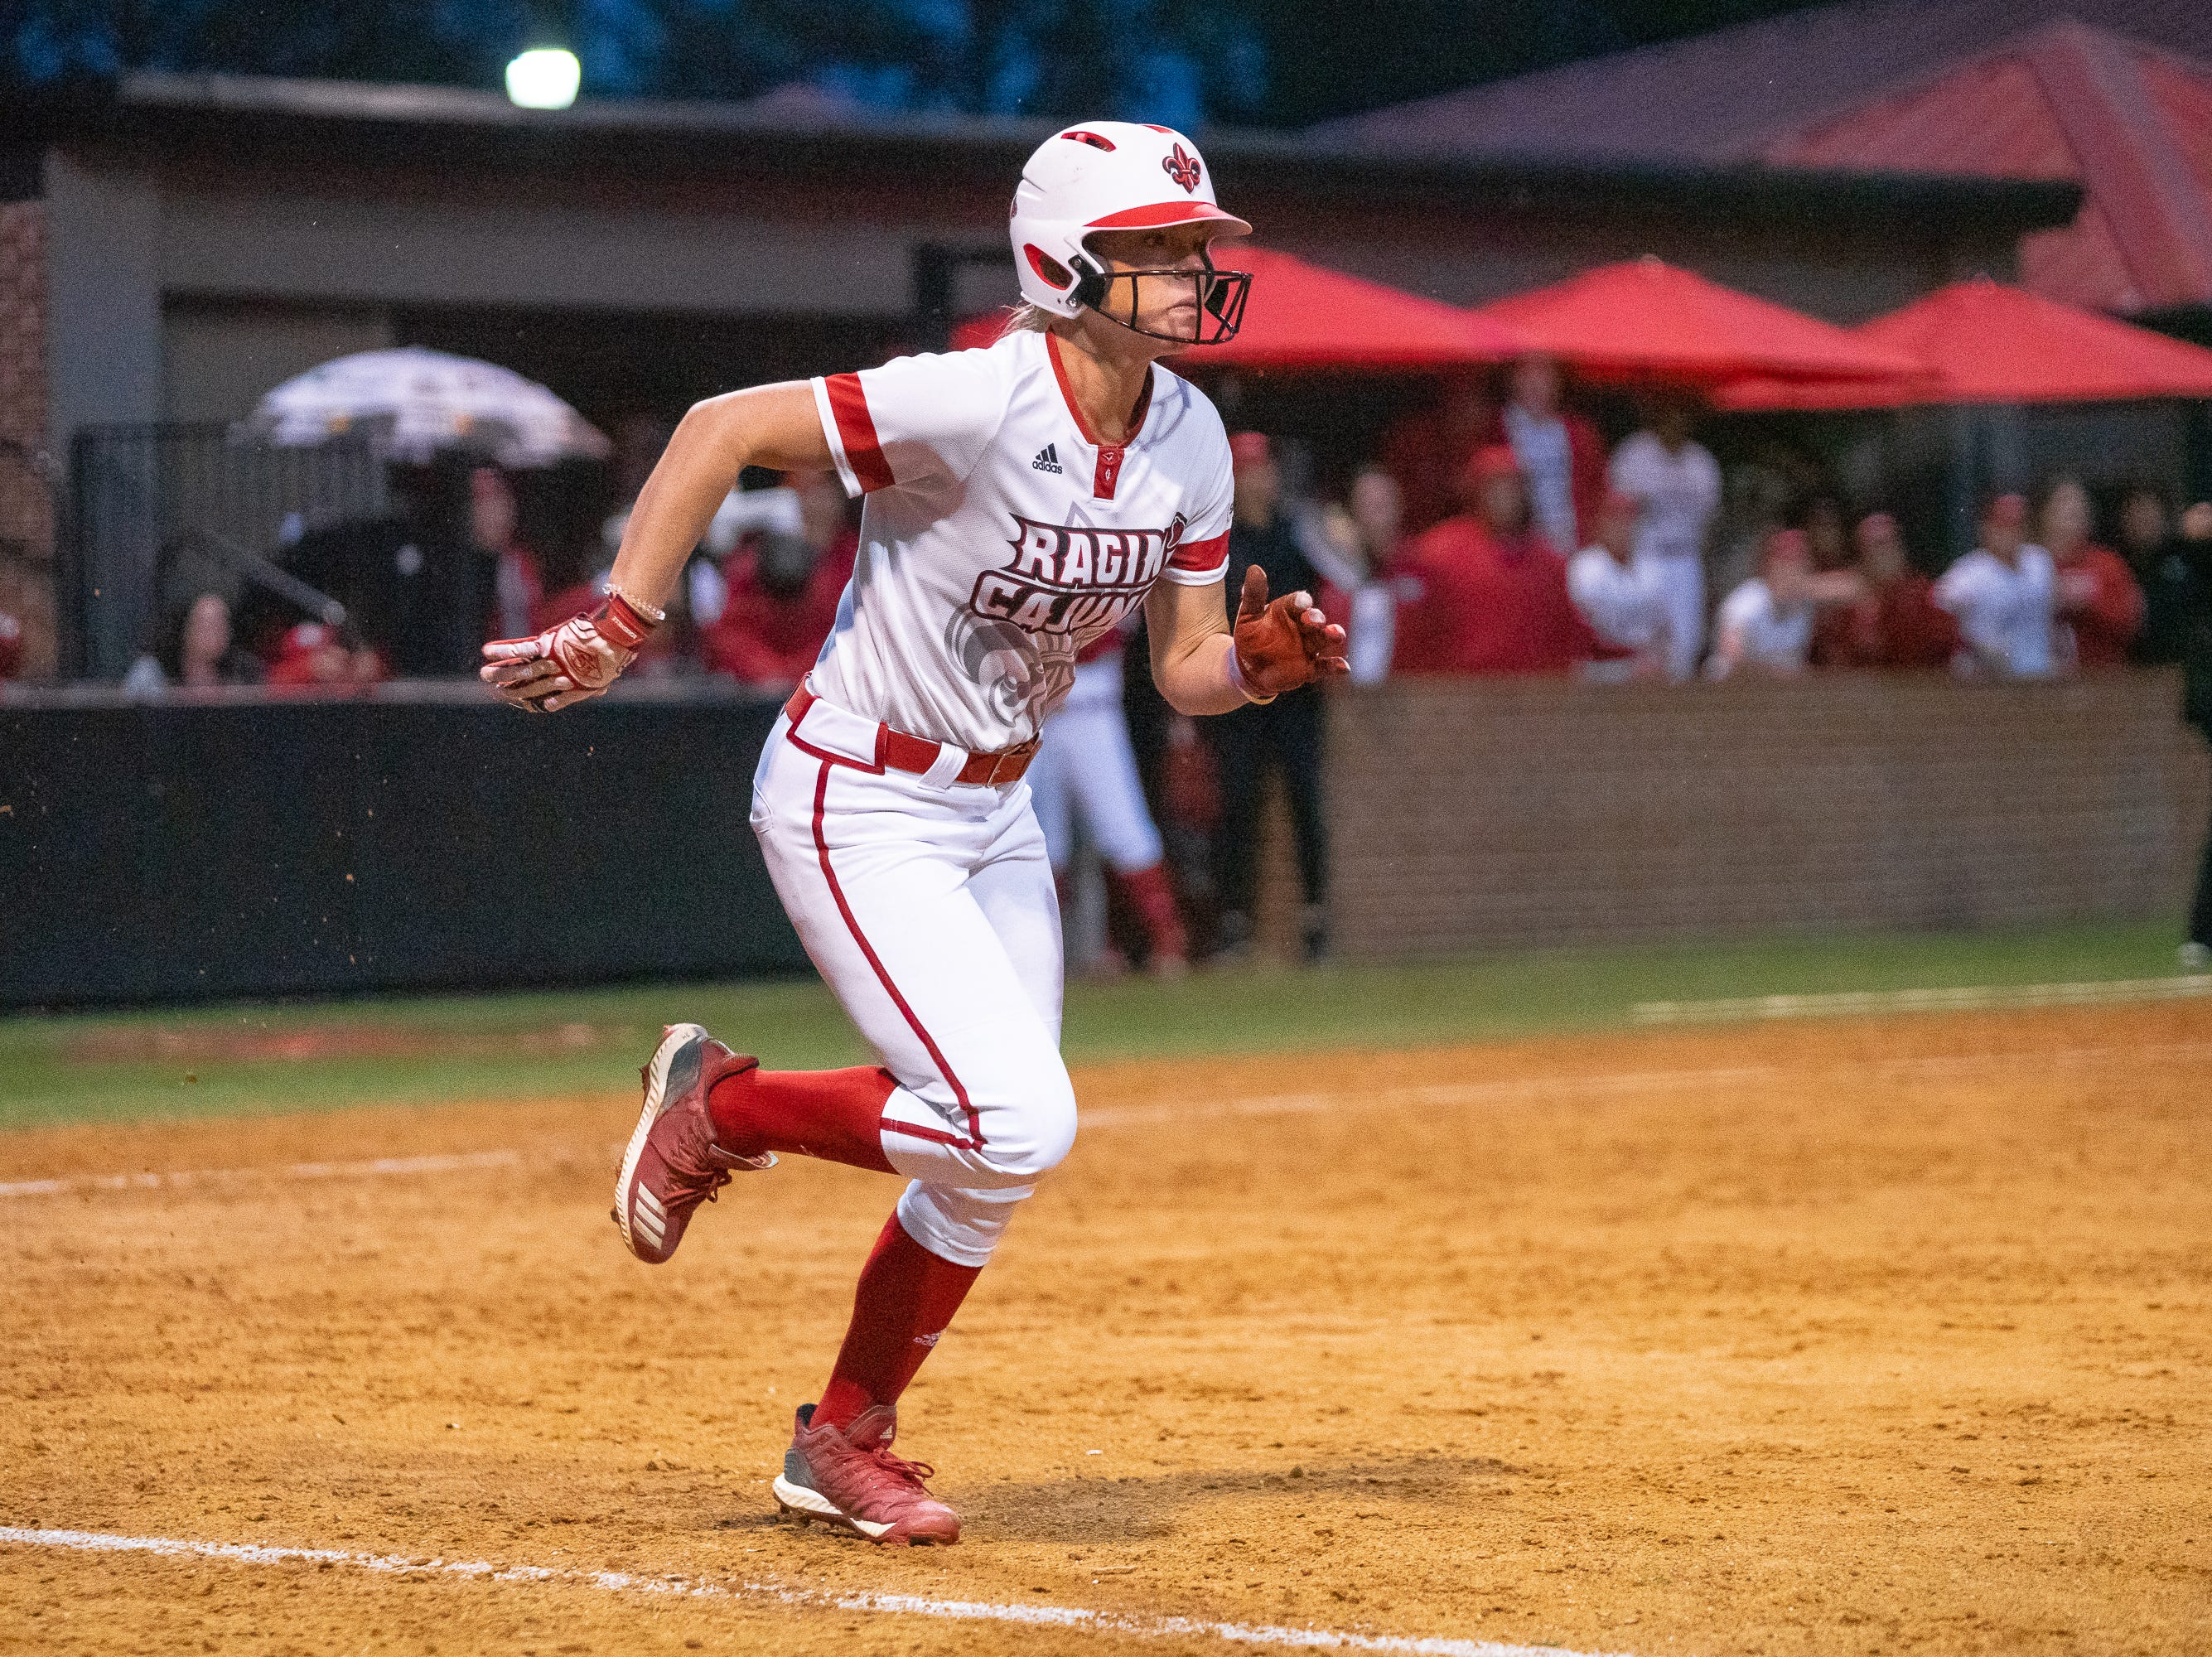 UL's Casidy Chaumont runs to first base as the Ragin' Cajuns take on the Troy Trojans at Lamson Park, Yvette Girouard Field on Friday, March 15, 2019.